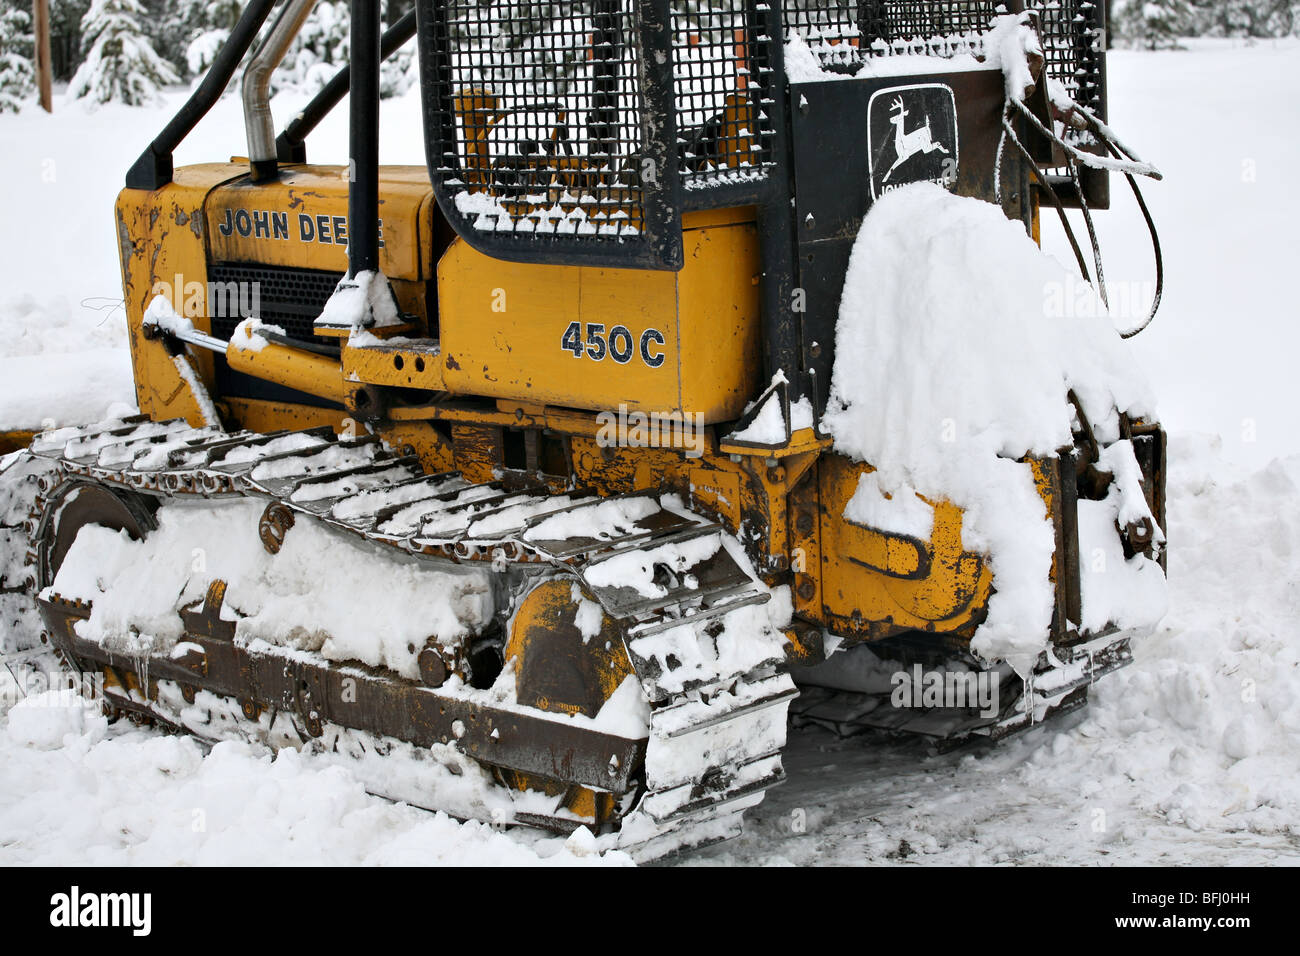 John Deere 450 C Bulldozer in the snow Stock Photo: 26825837